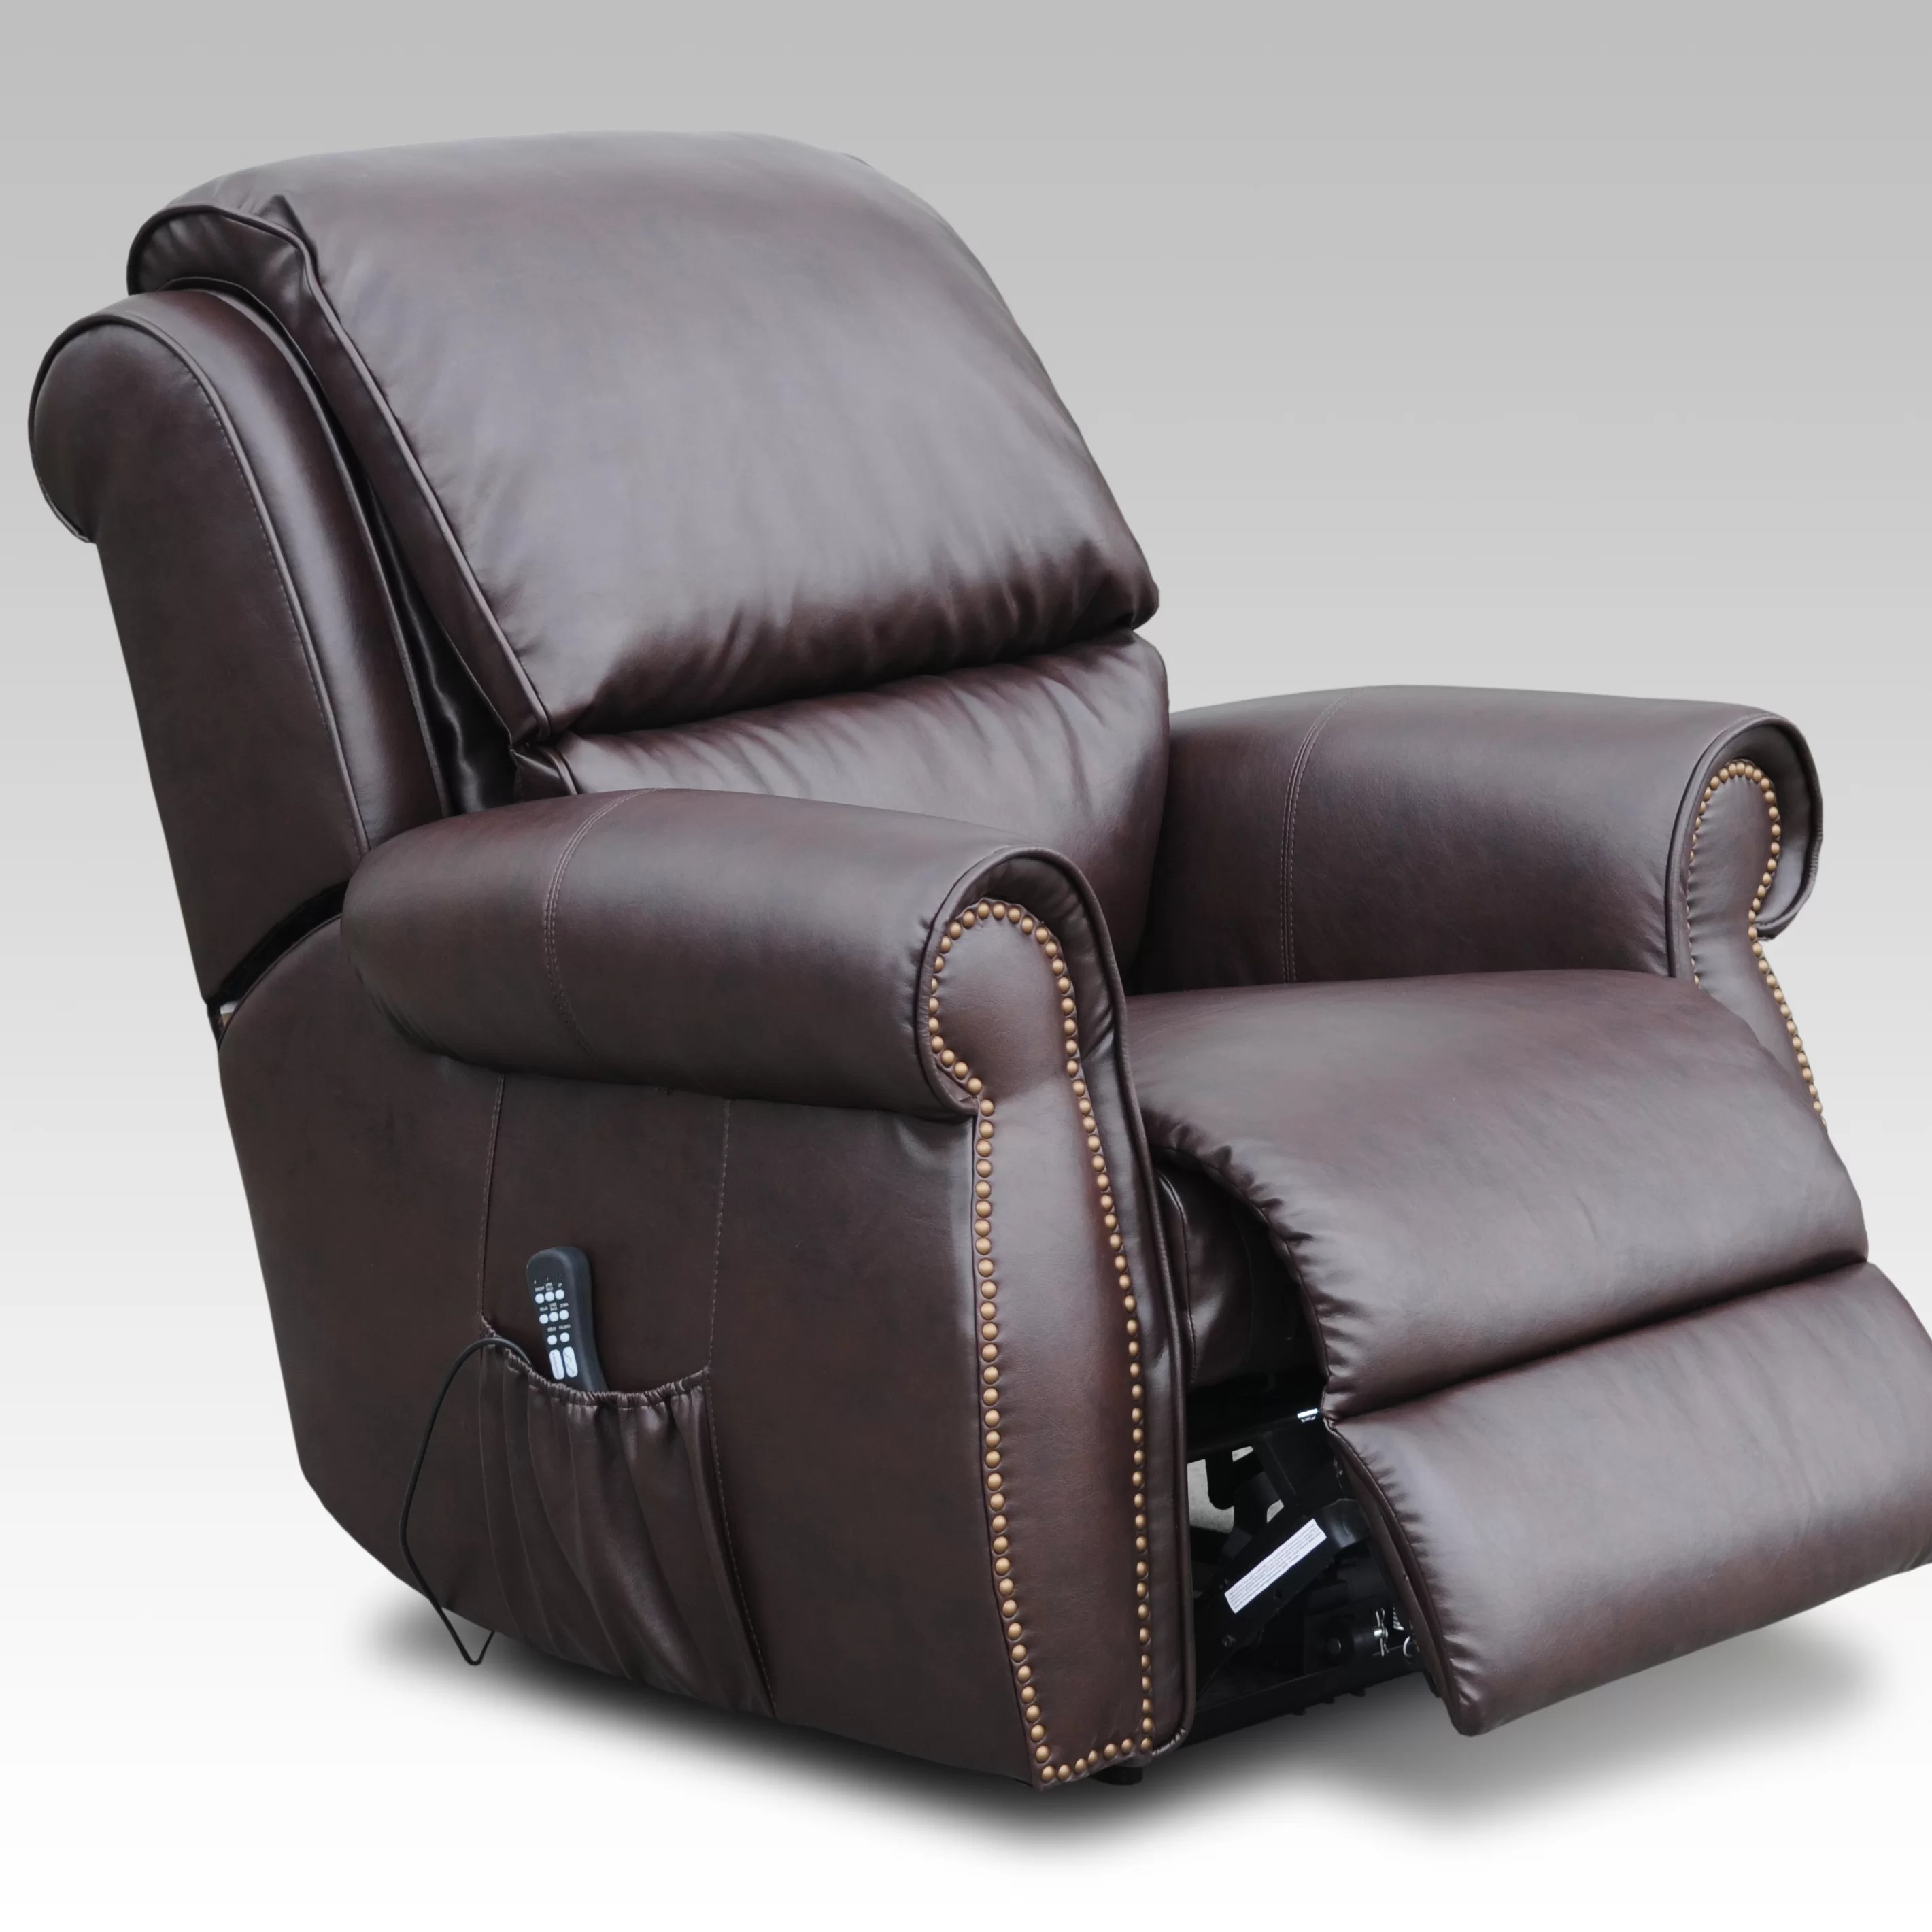 Top Rated Massage Chairs Ac Pacific Reclining Massage Chair And Reviews Wayfair